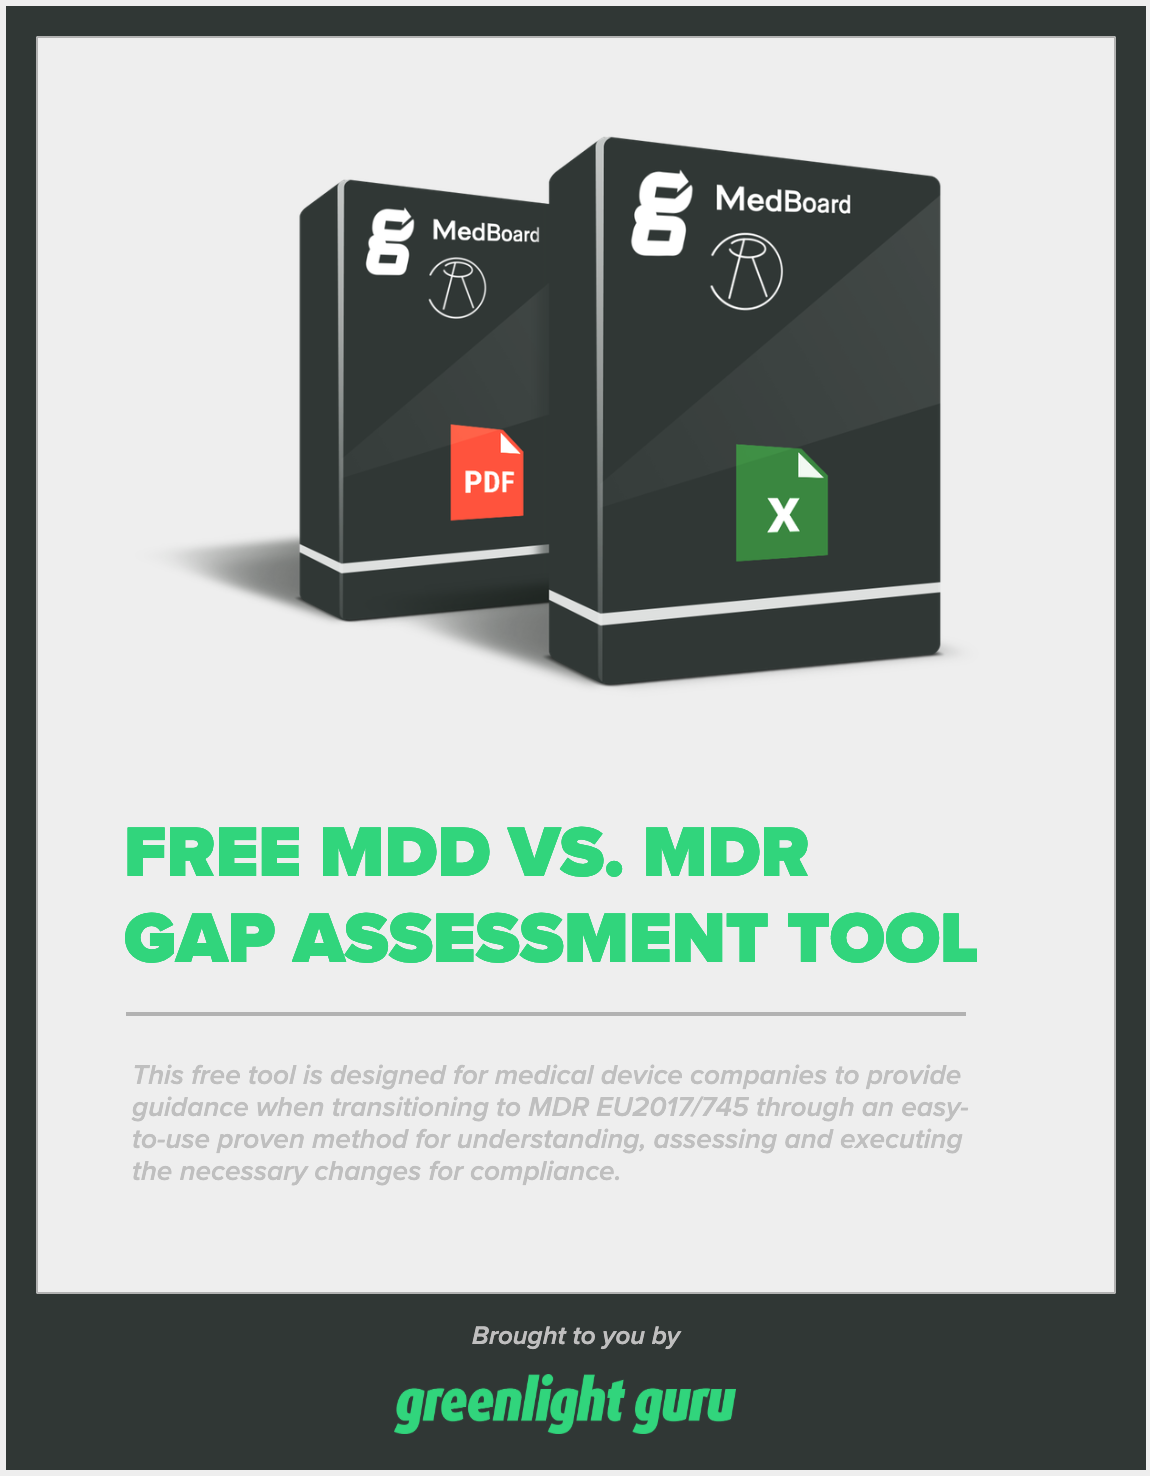 free download CTA cover - mdd vs mdr gap assessment